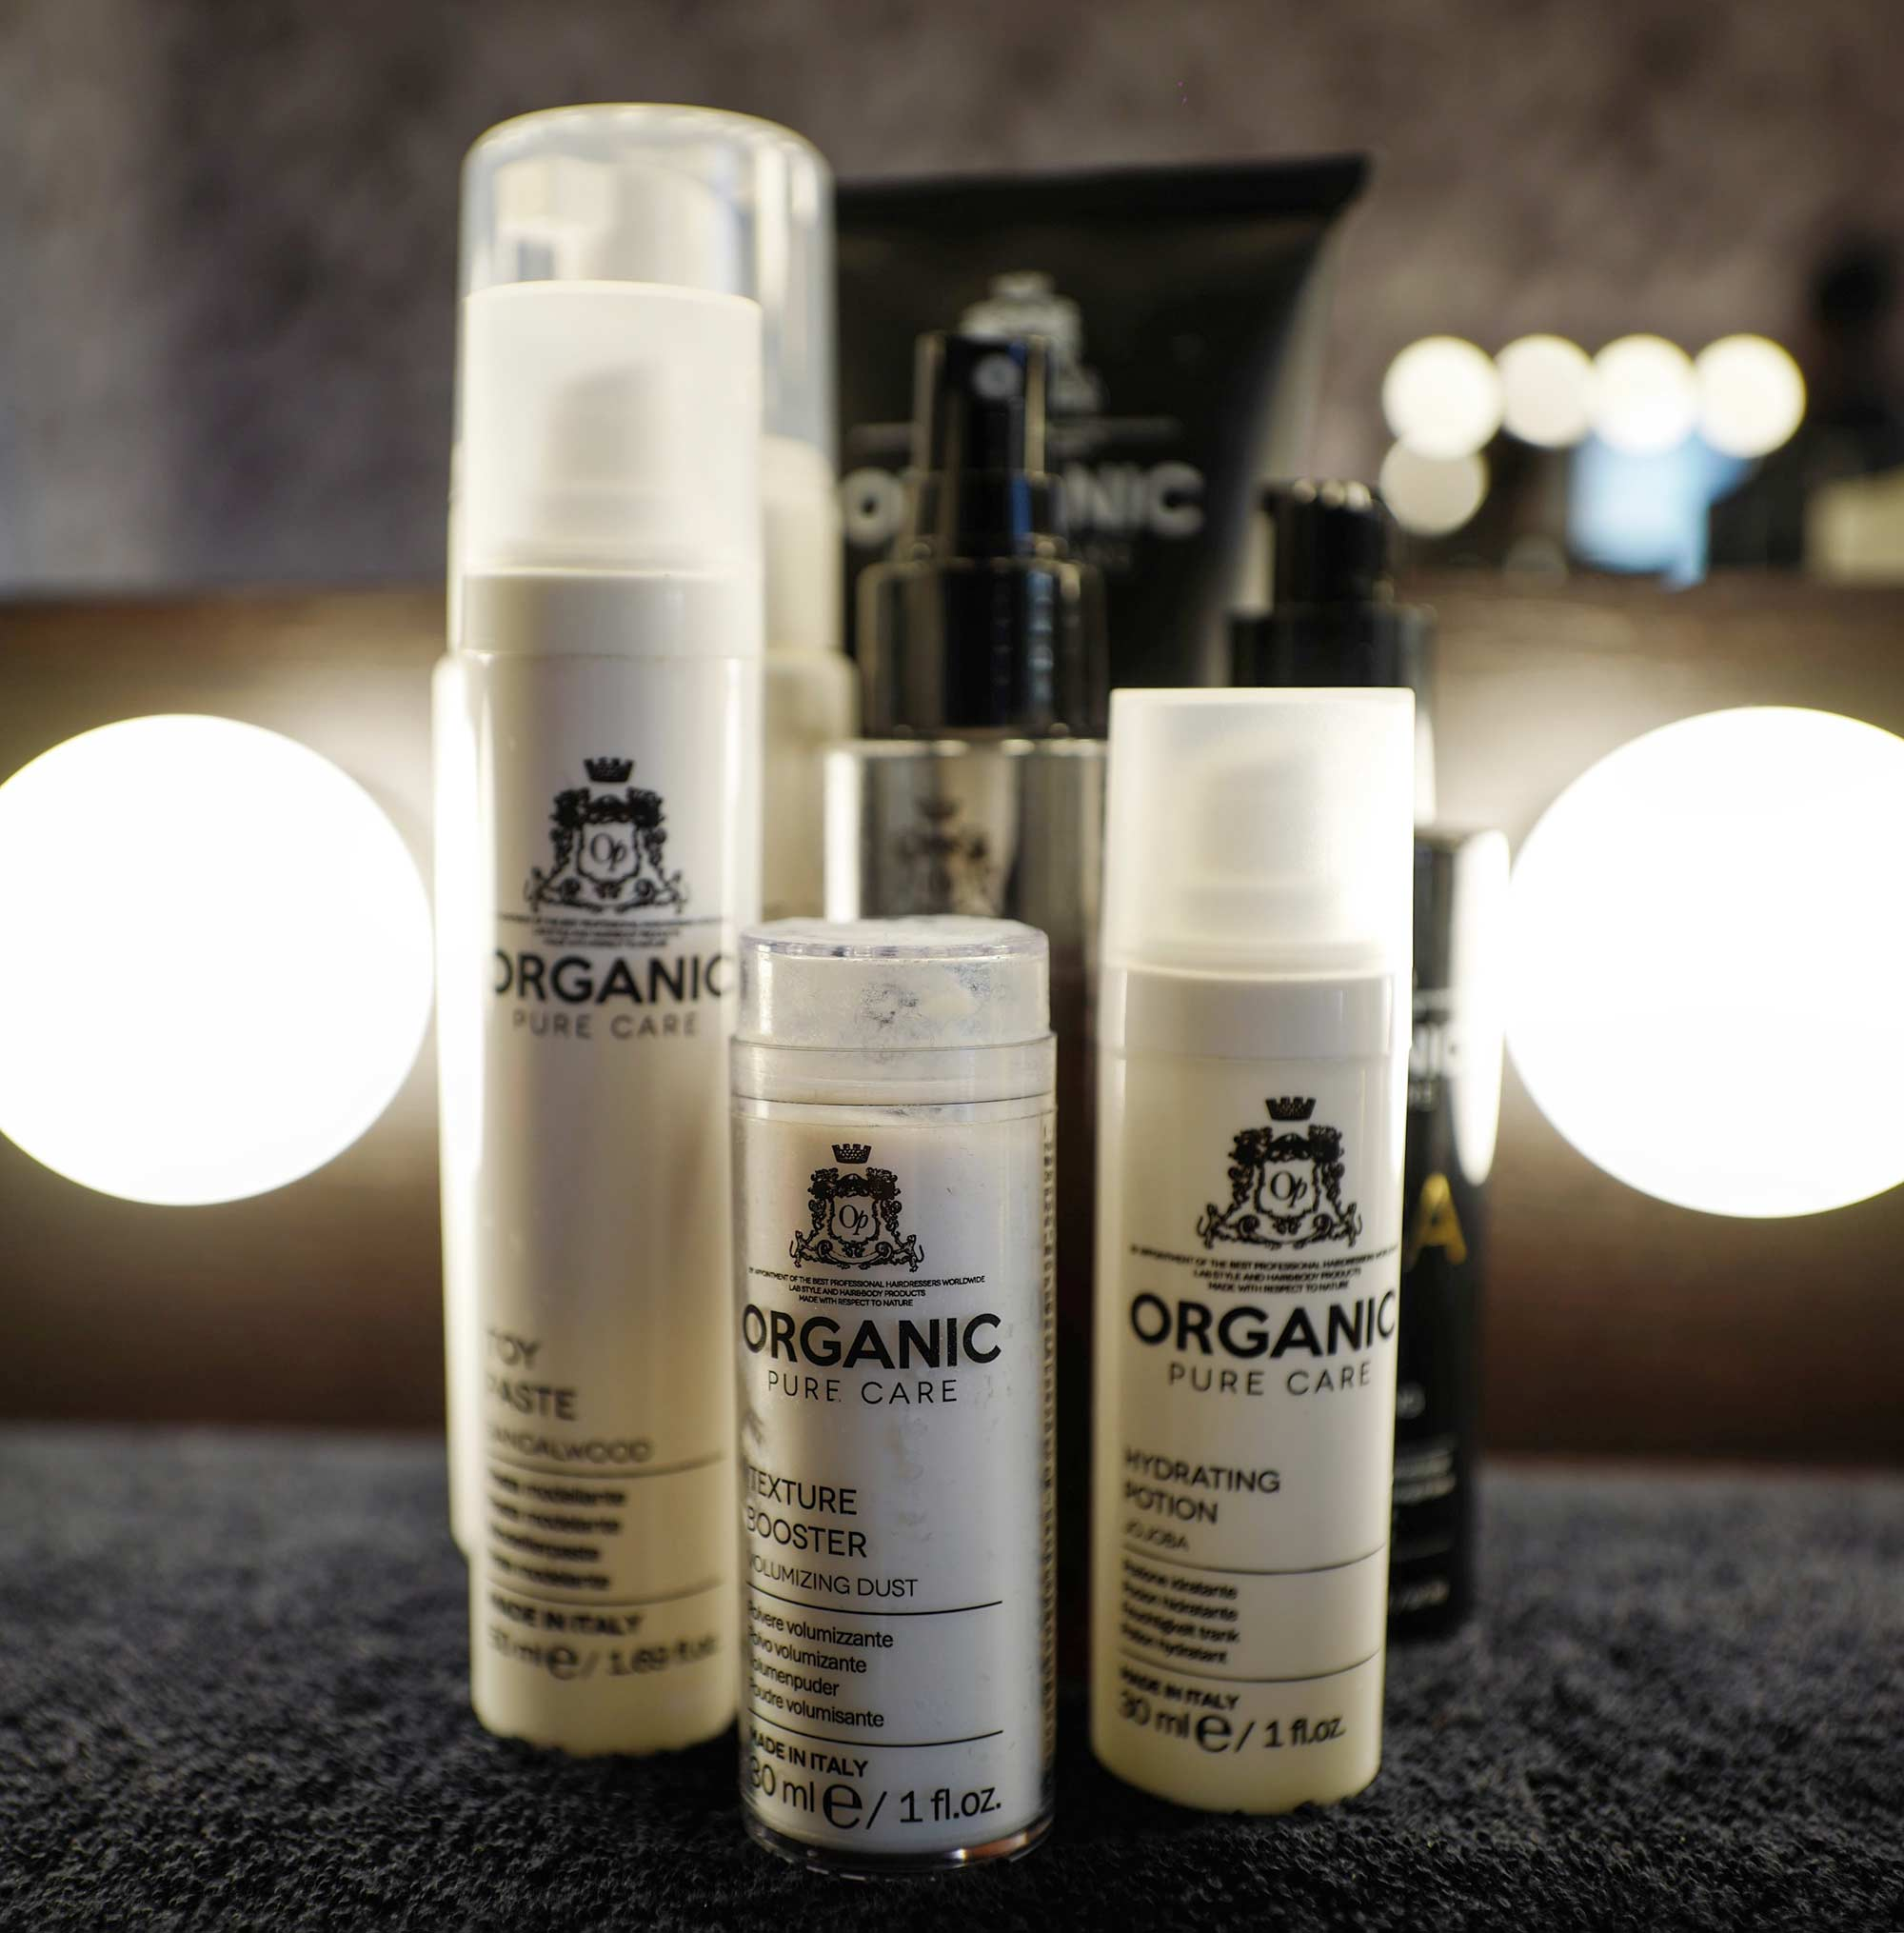 Cannes 2017 - Organic Pure Care products